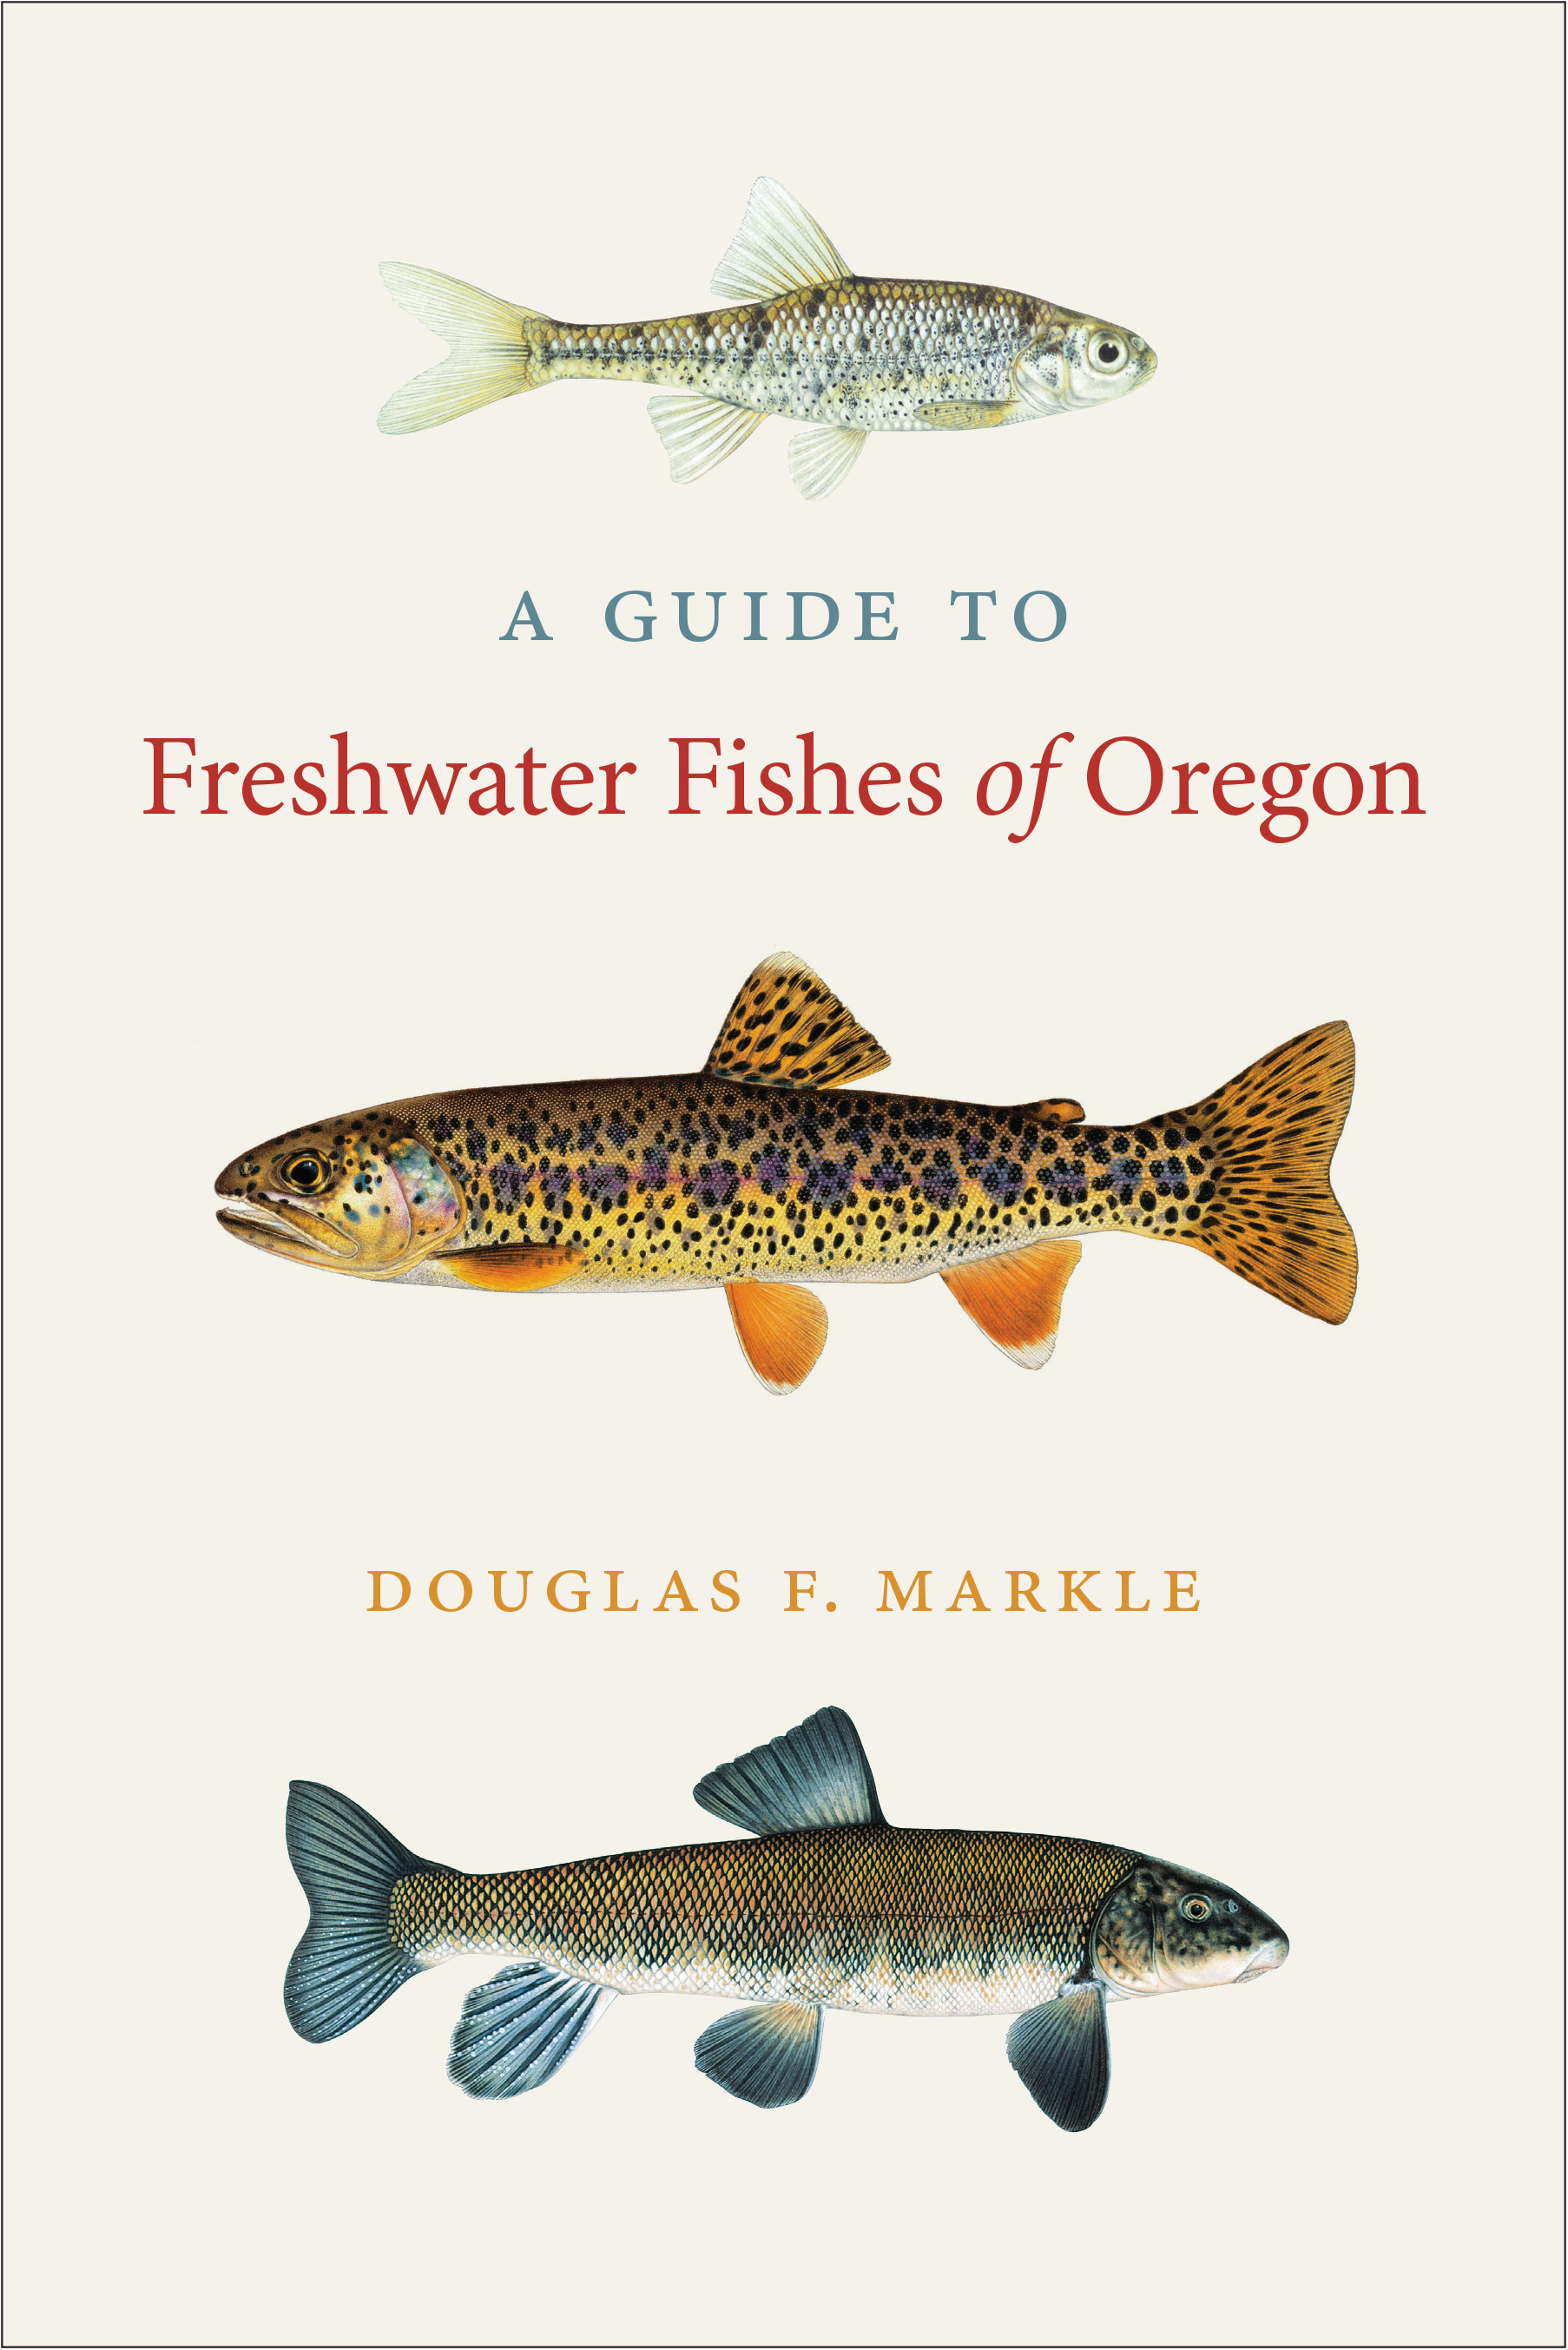 Freshwater fish diversity - A Guide To Freshwater Fishes Of Oregon